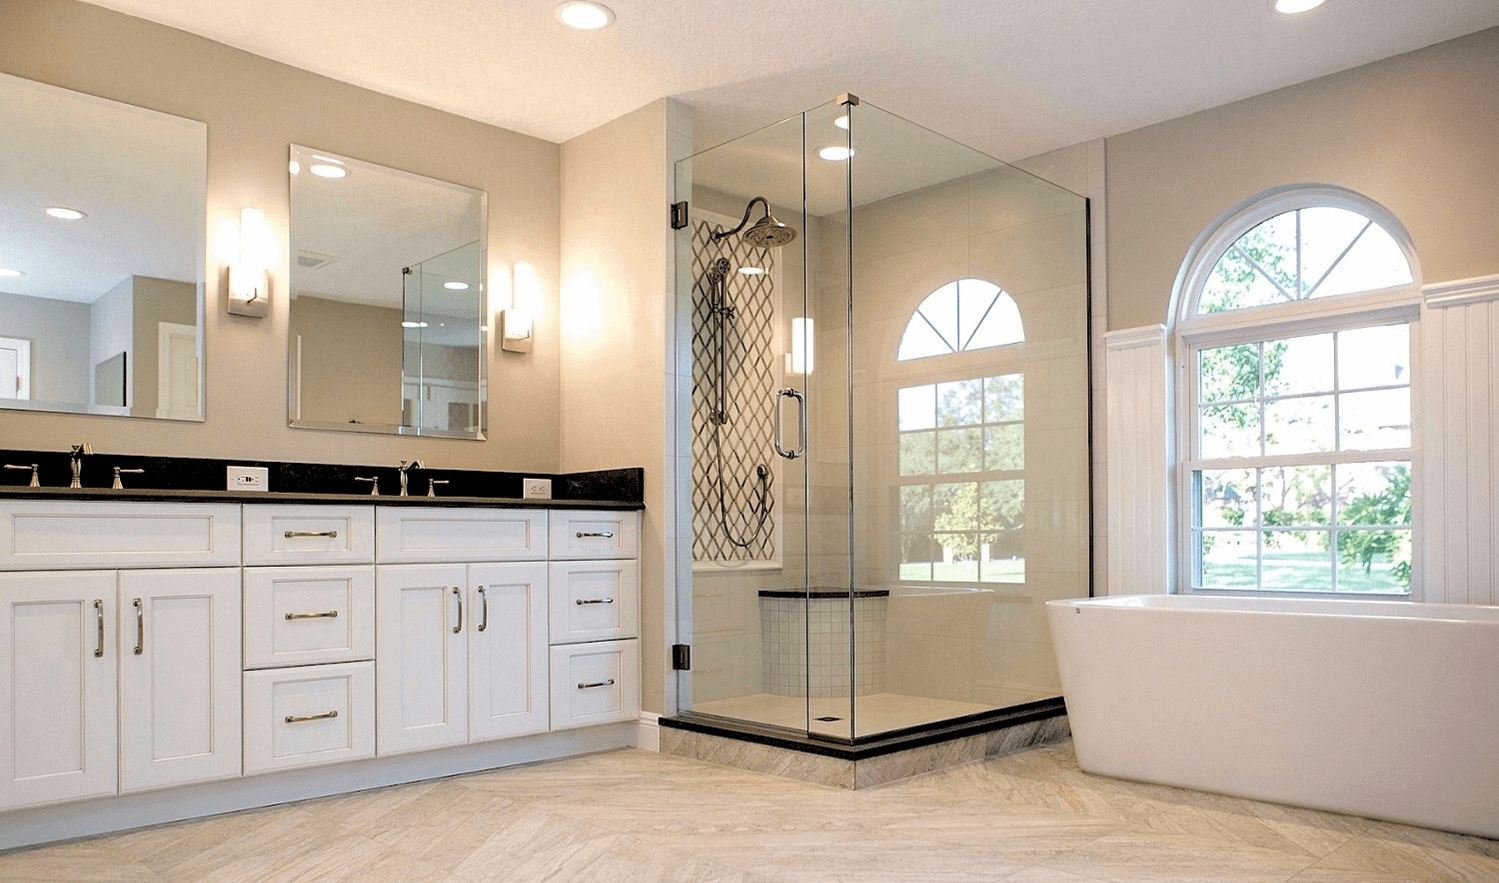 Bathroom Remodel Orlando kitchen & bathroom remodeling services in orlando | kbf design gallery